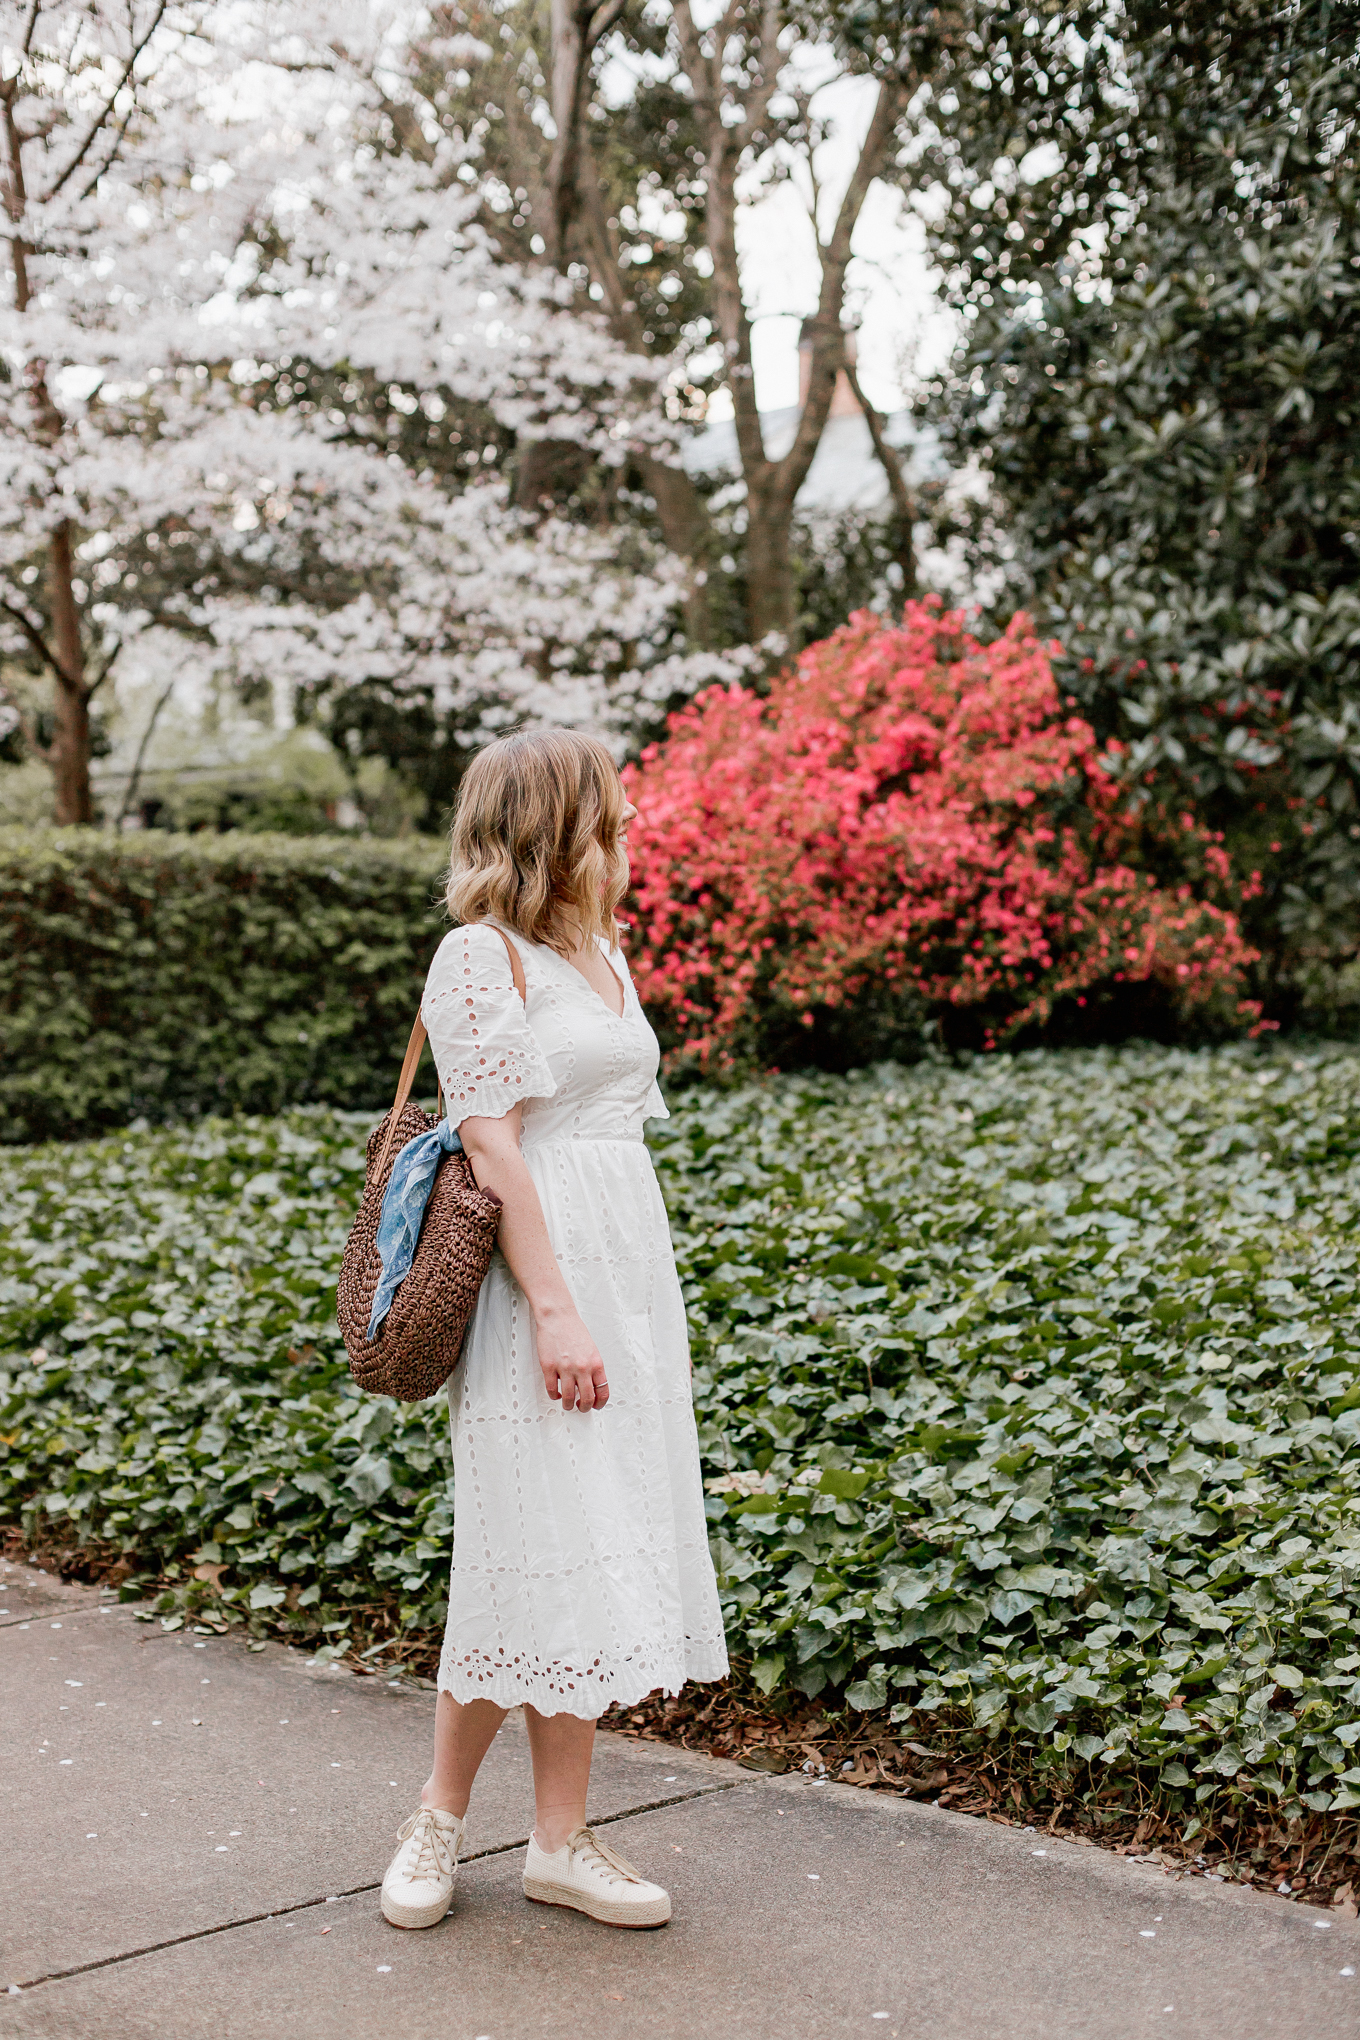 Affordable Spring Dresses   How to Casually Style a LWD   Louella Reese